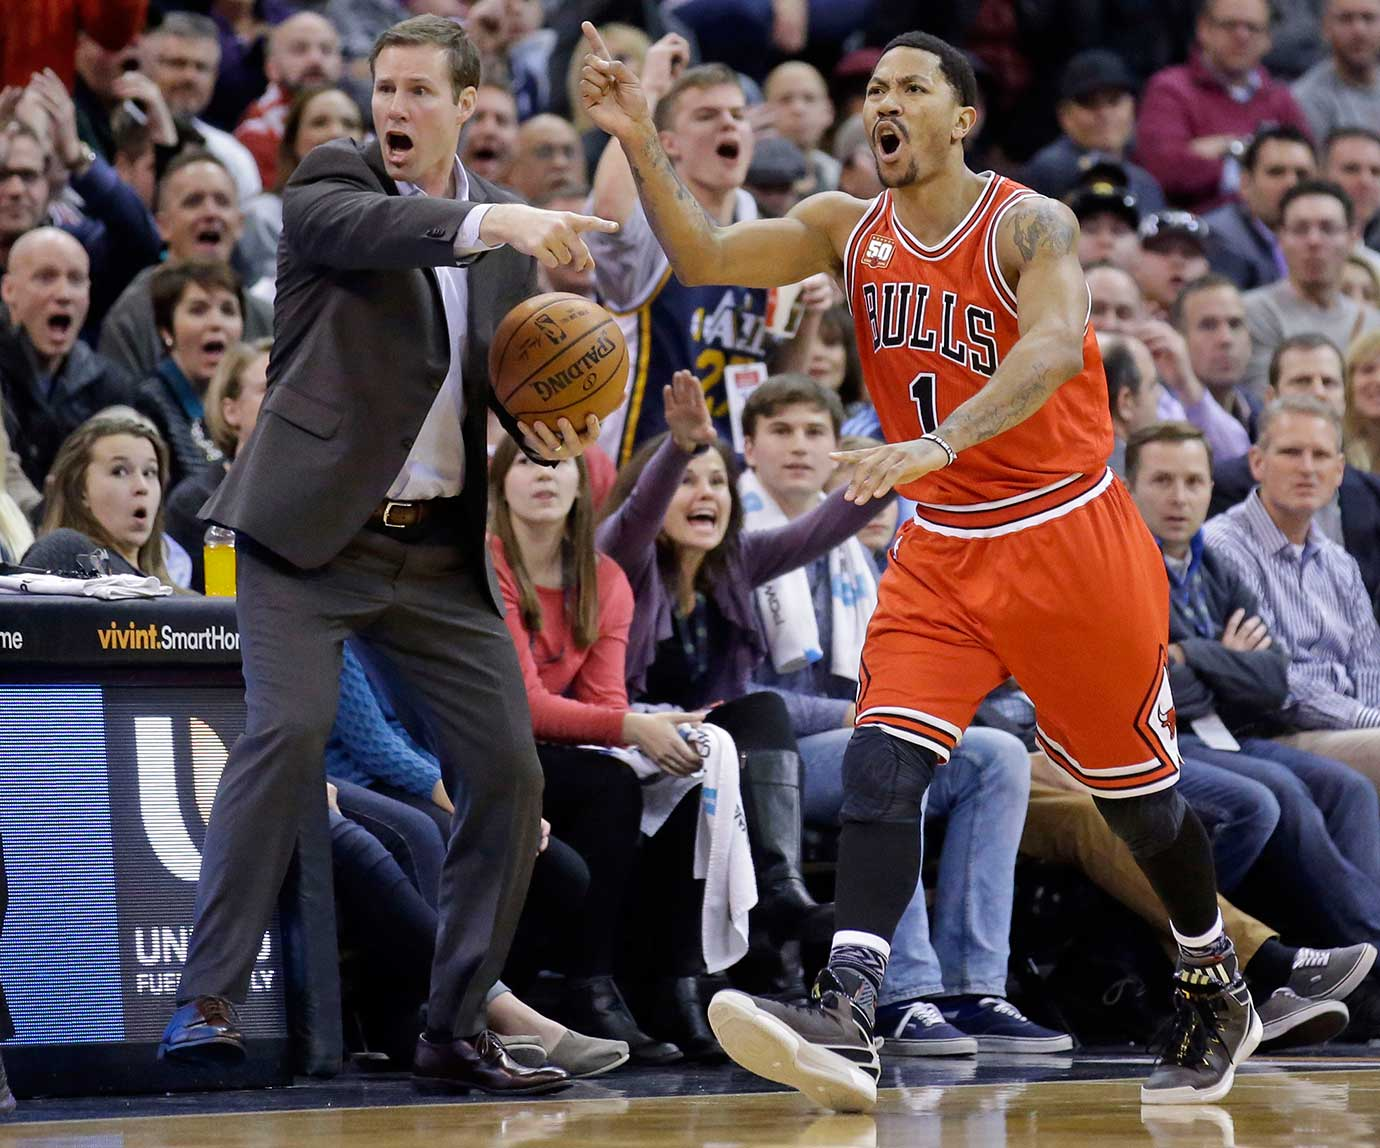 Chicago Bulls head coach Fred Hoiberg reacts with Derrick Rose after turning the ball over to the Utah Jazz during overtime in Salt Lake City. The Jazz won 105-96.